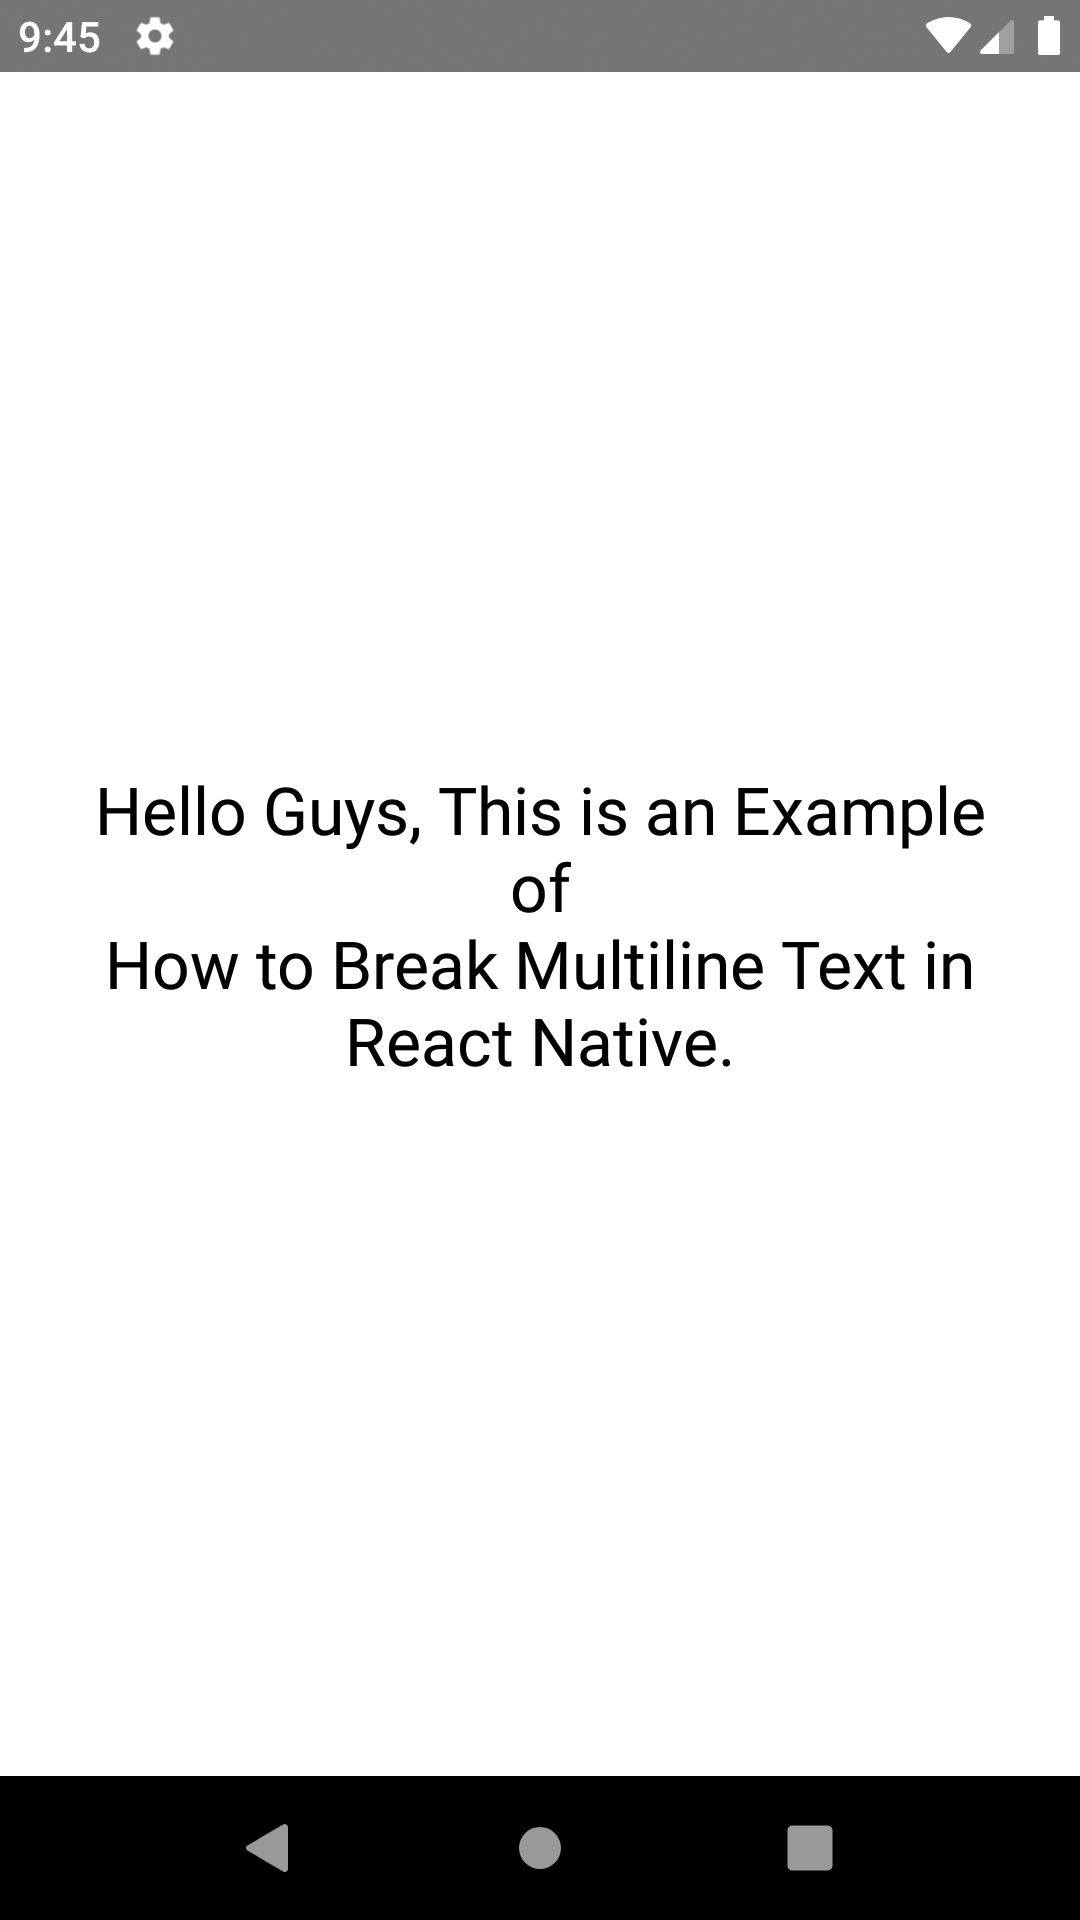 Create Multi Line Text Breaking Text Line From Middle in React Native